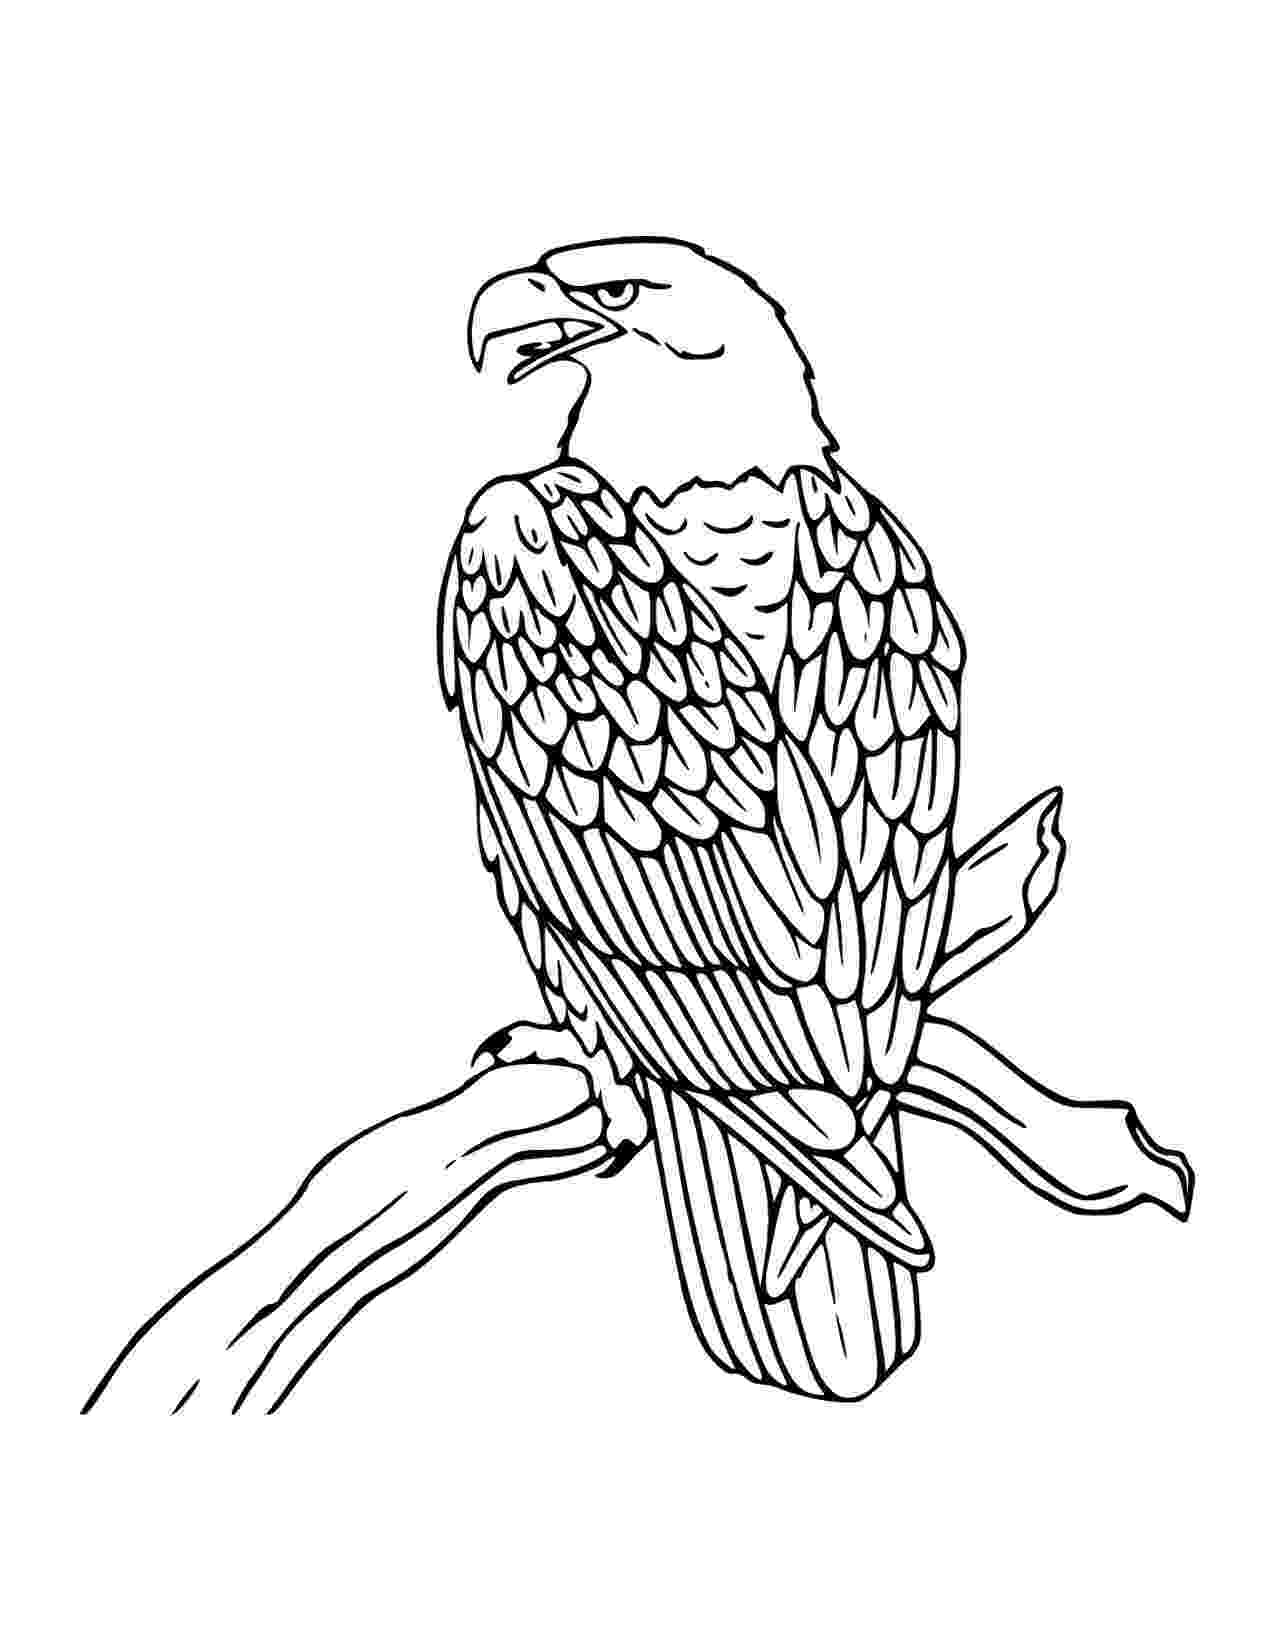 coloring eagle free eagle coloring pages coloring eagle 1 1